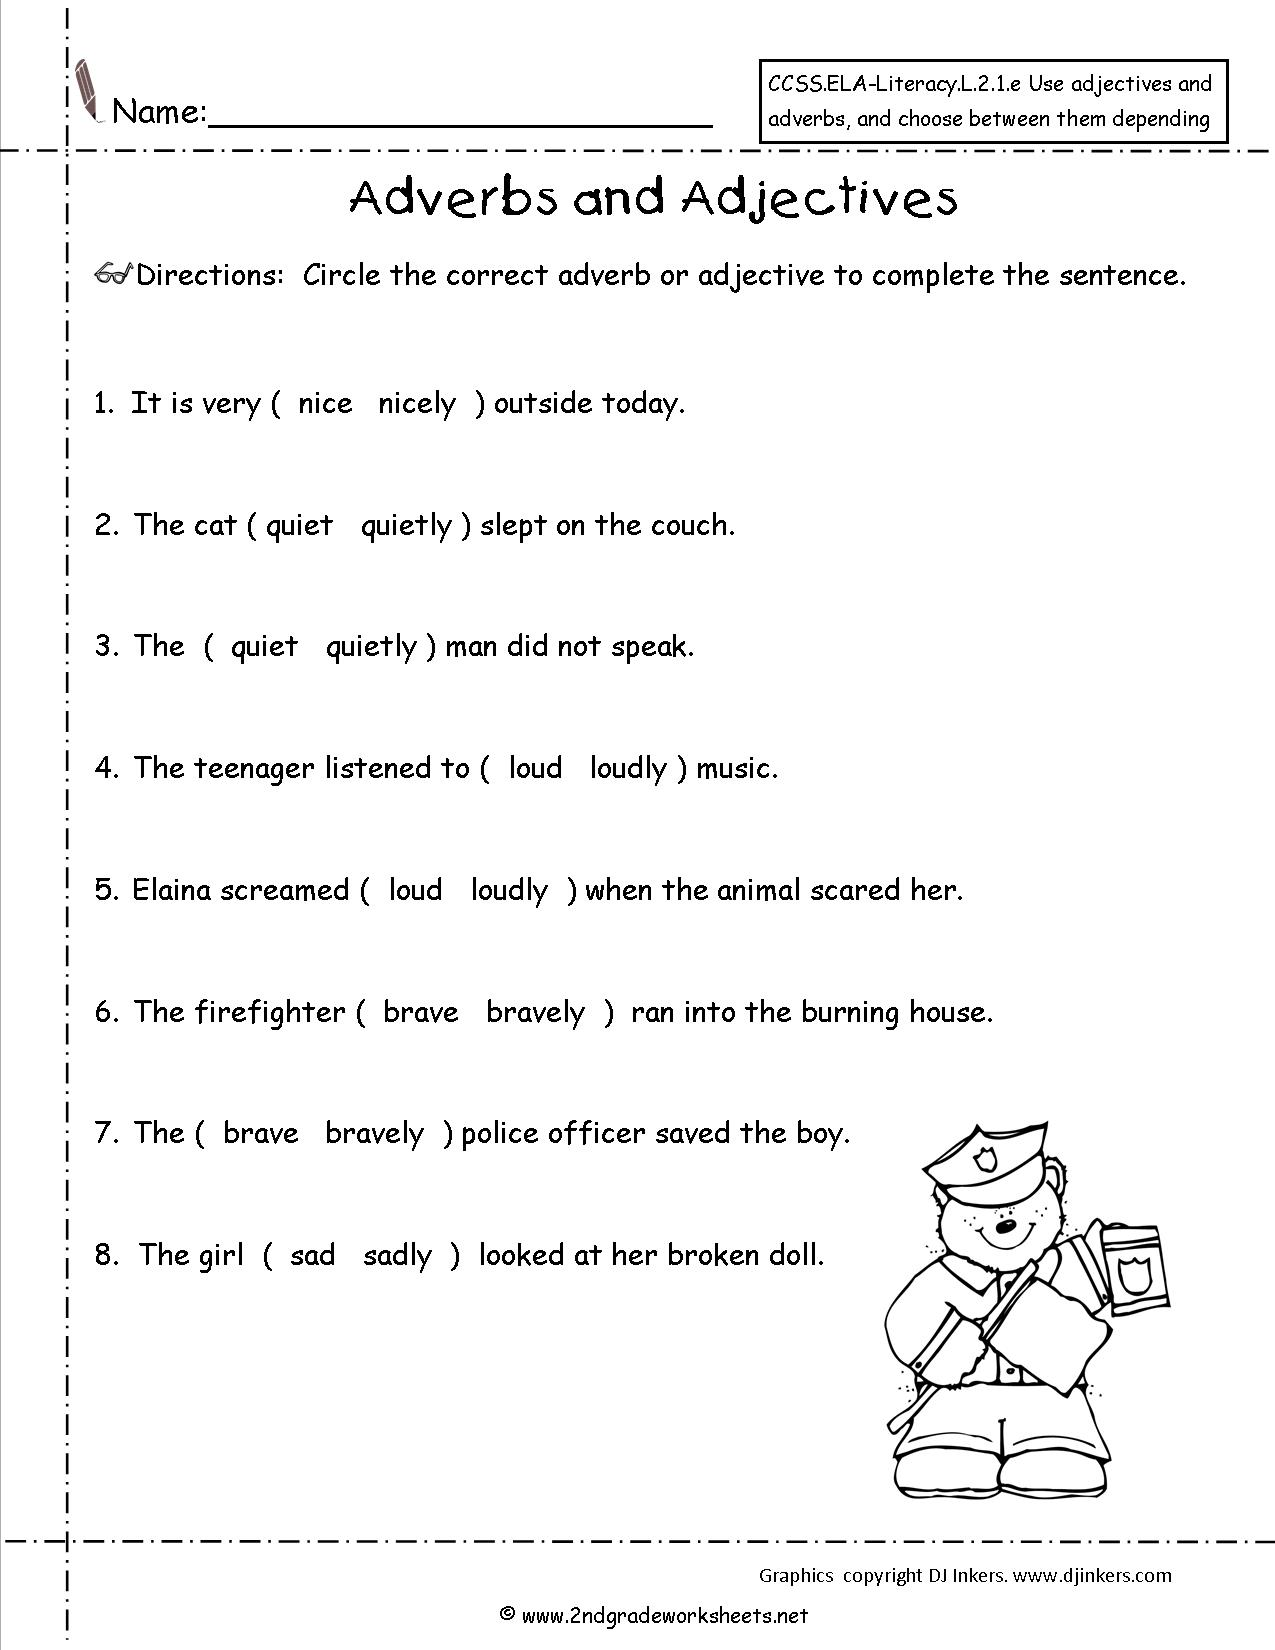 18 Best Images Of Adjectives Worksheets For Grade 2